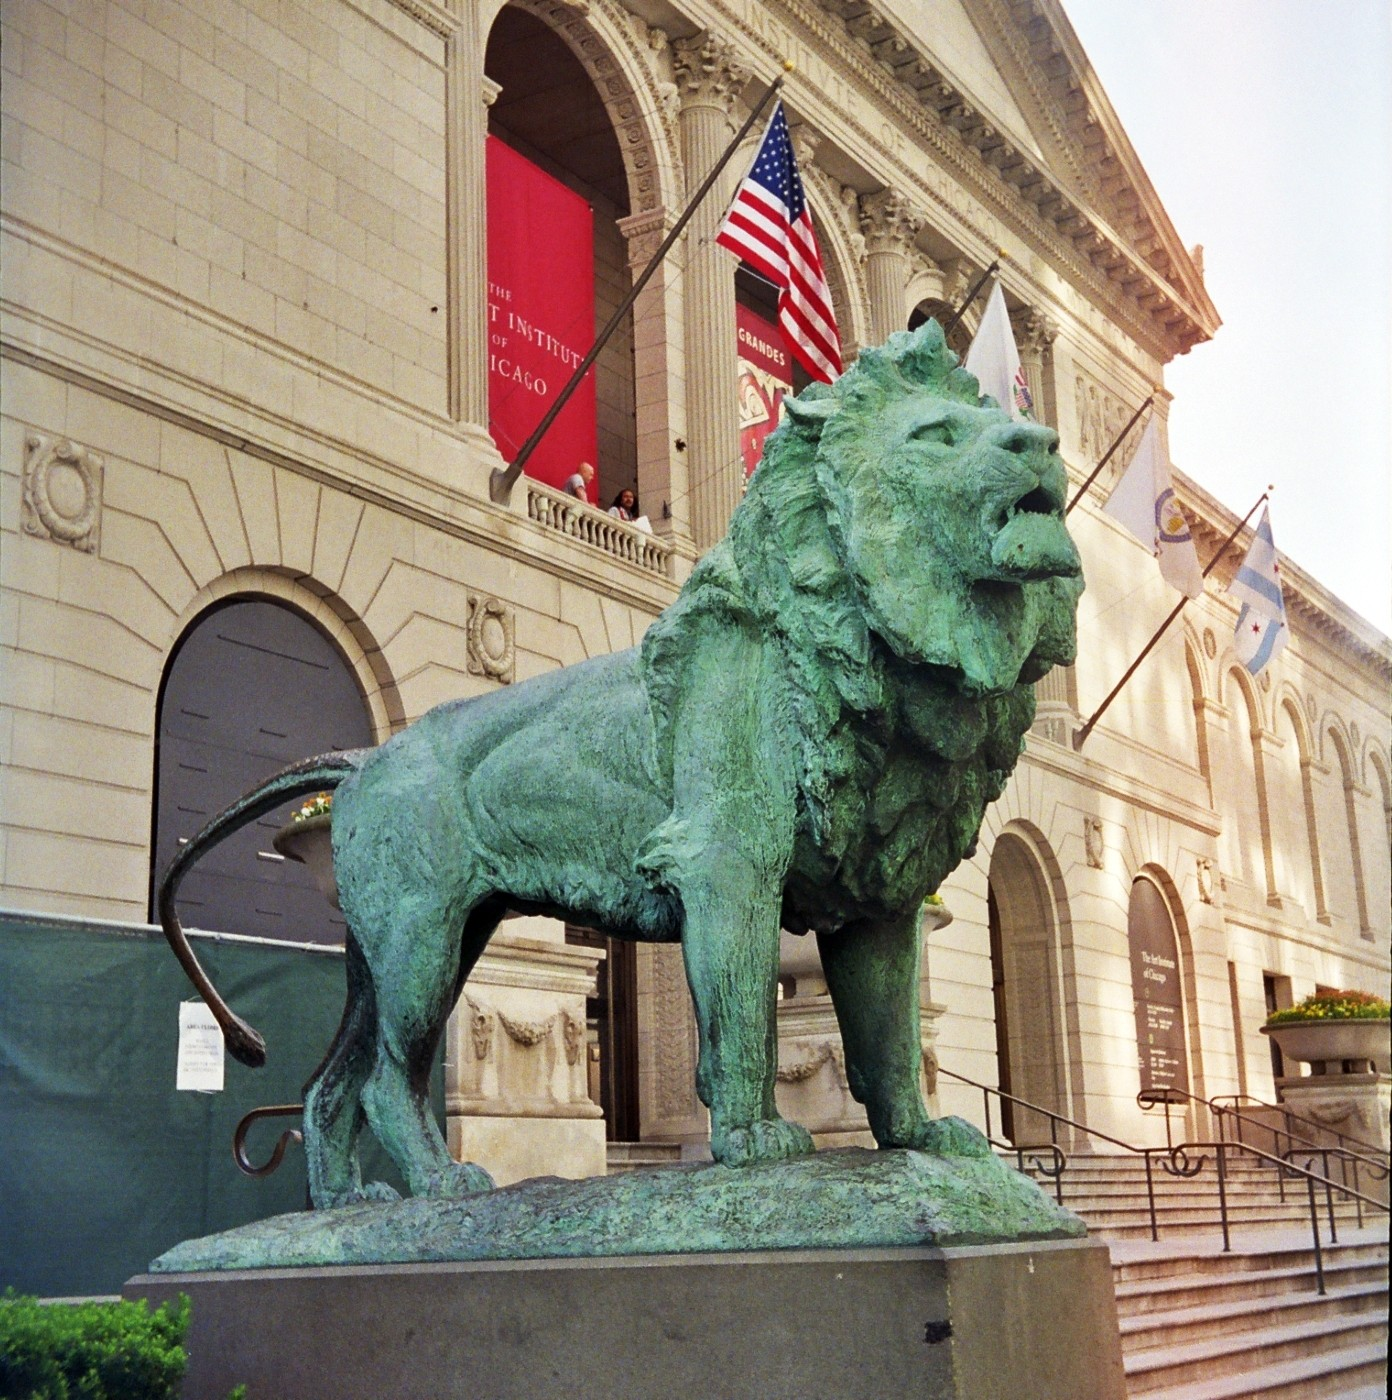 Making the Art Institute of Chicago a more inclusive place